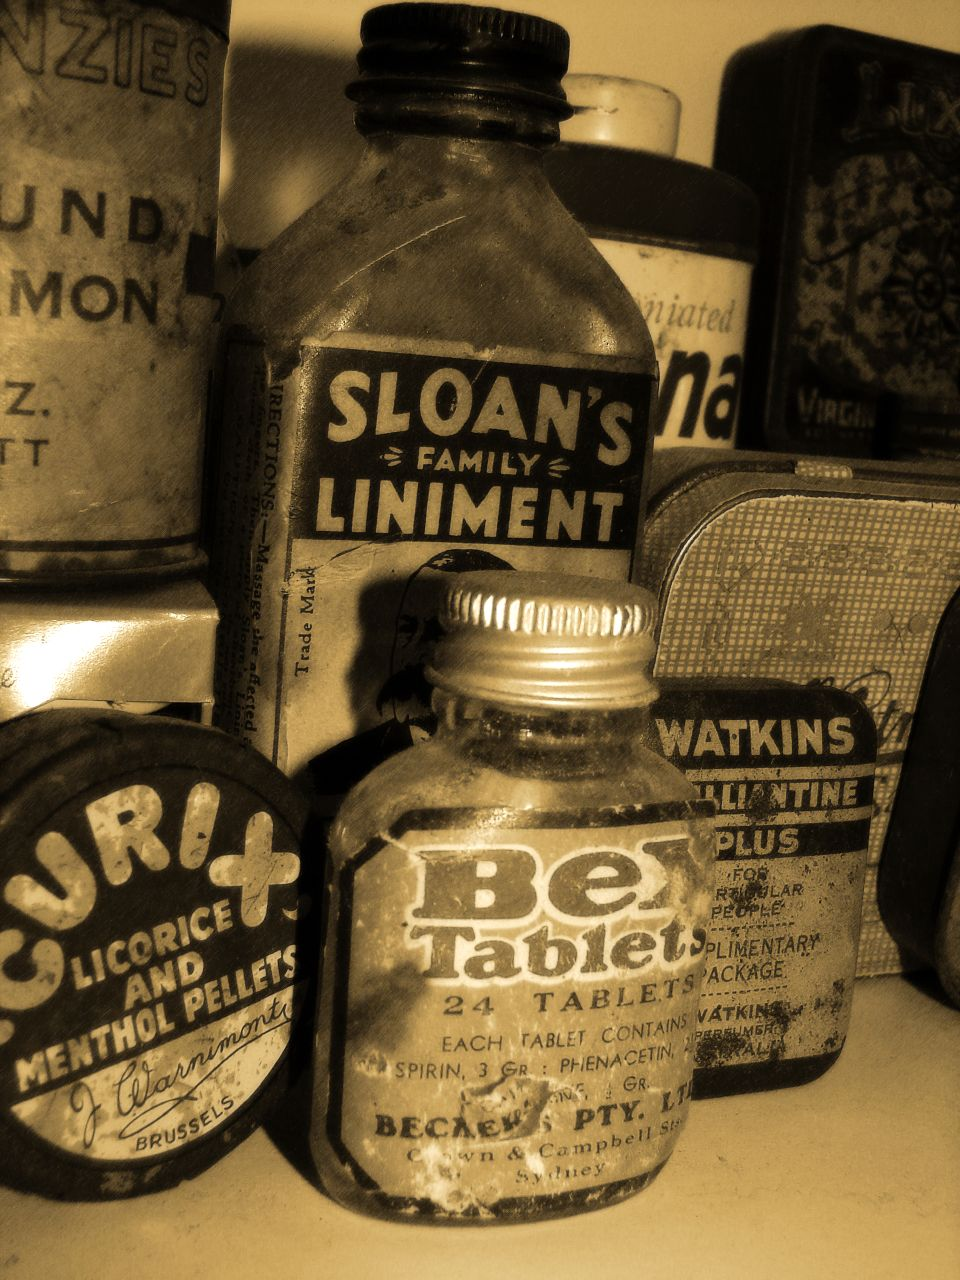 http://upload.wikimedia.org/wikipedia/commons/b/b2/My_Old_Medicine_bottle_jar_collection_(309391023).jpg